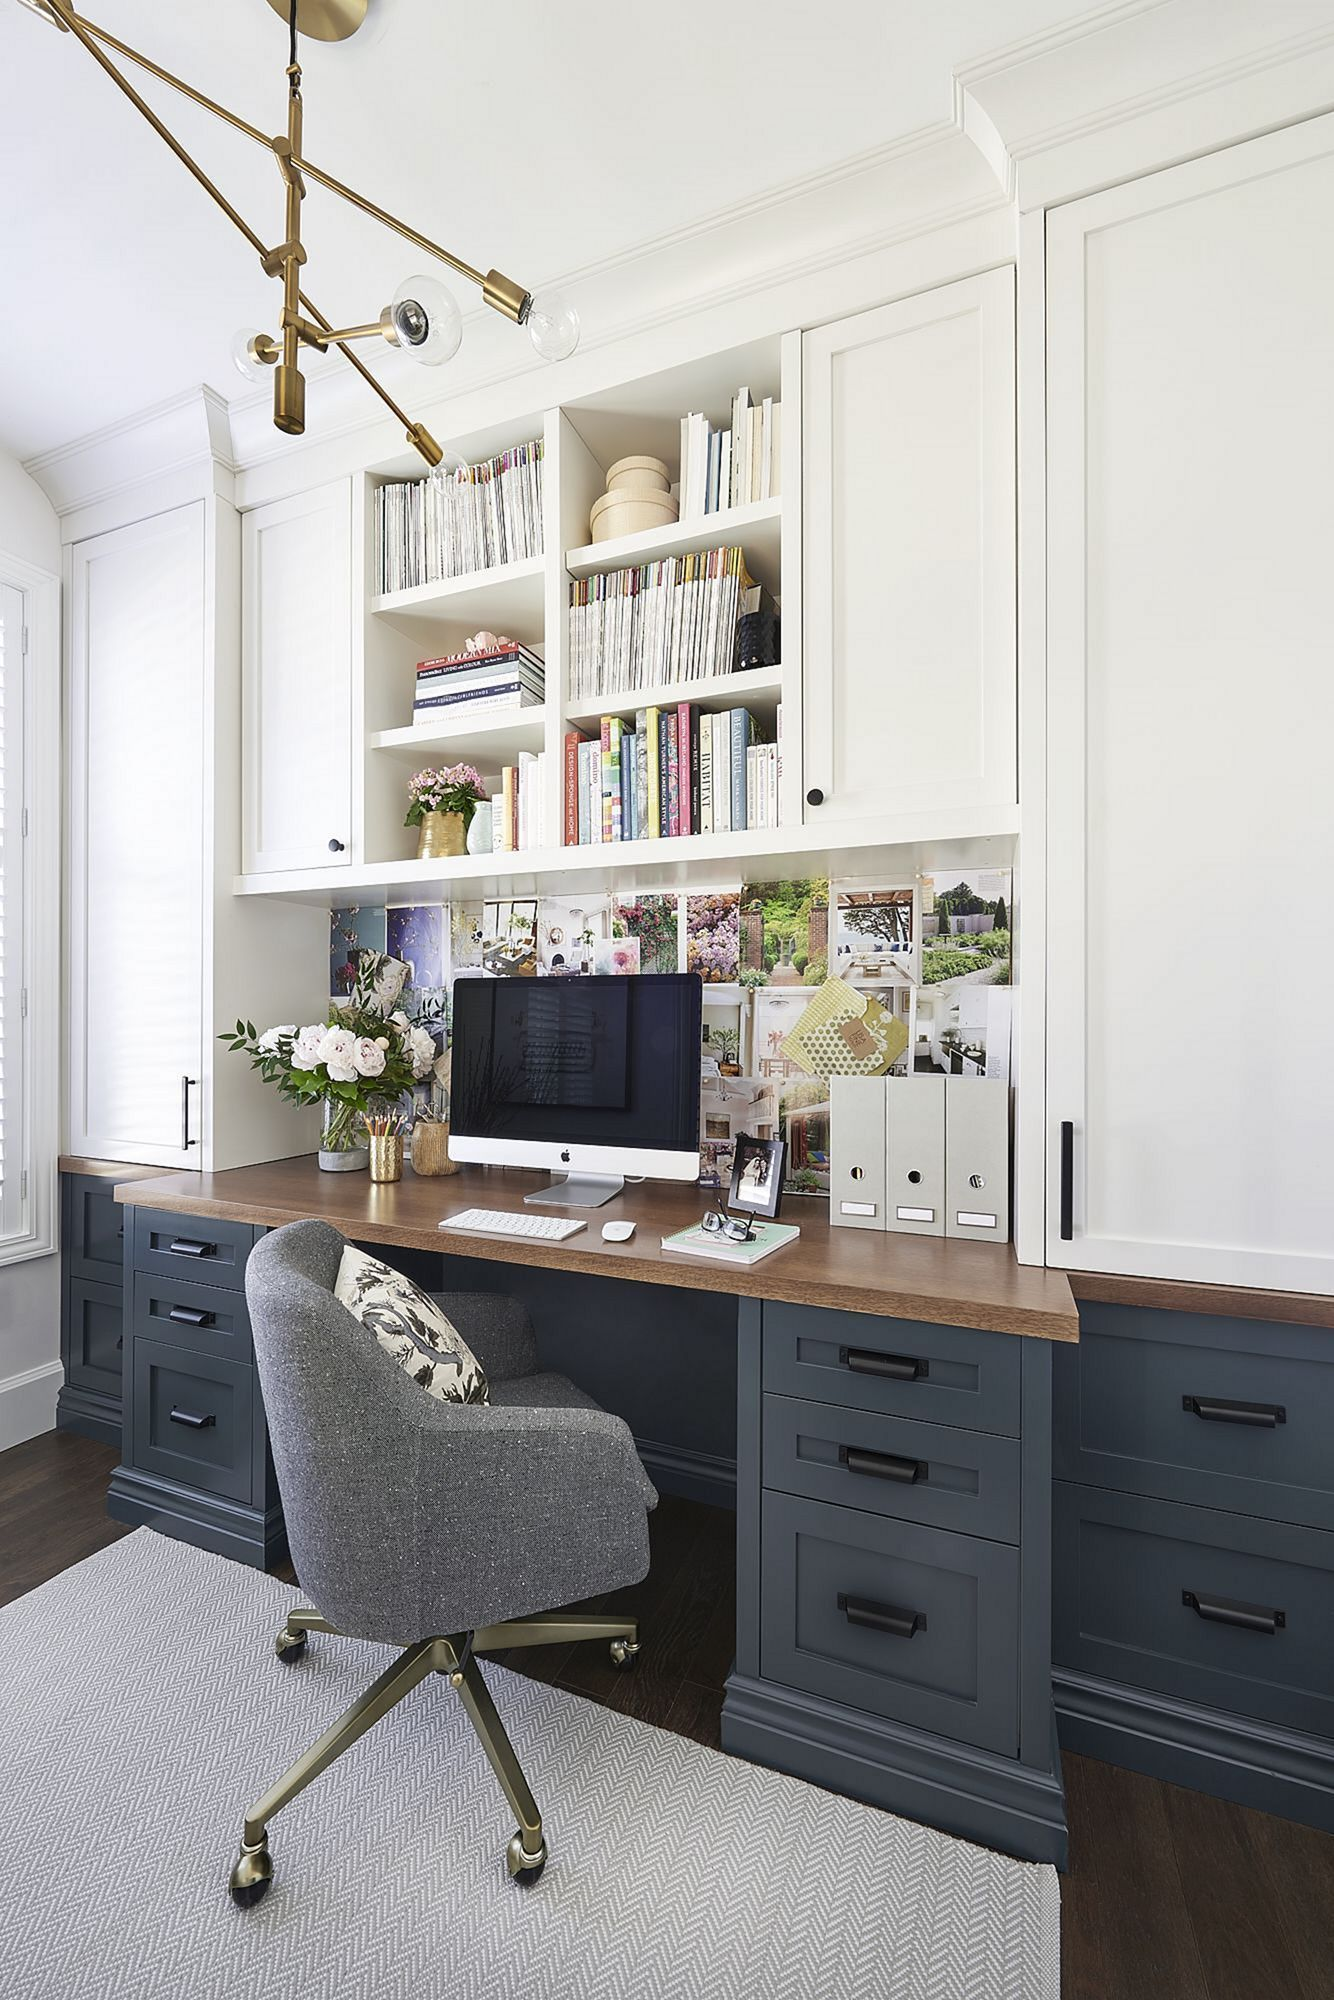 25 Most Beautiful Home Office Design Ideas Cozy Home Office Tiny Home Office Office Interior Design